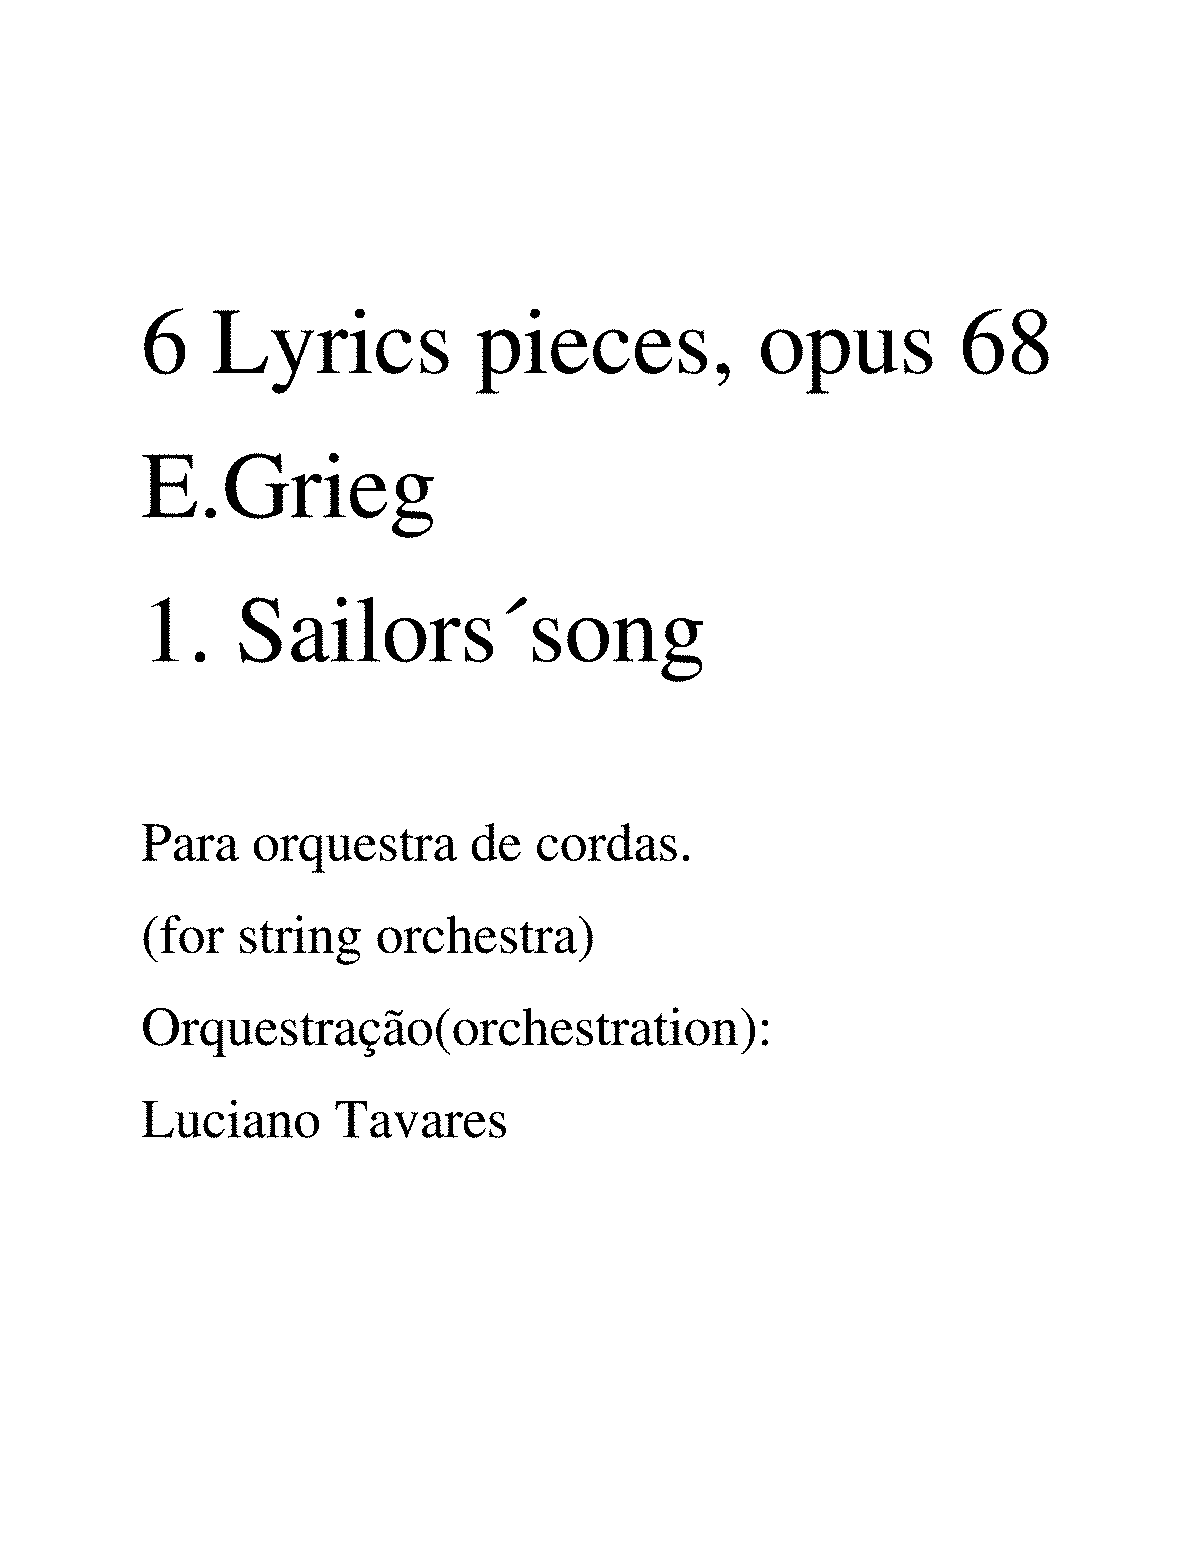 PMLP01784-E. Grieg sailors song orq..pdf